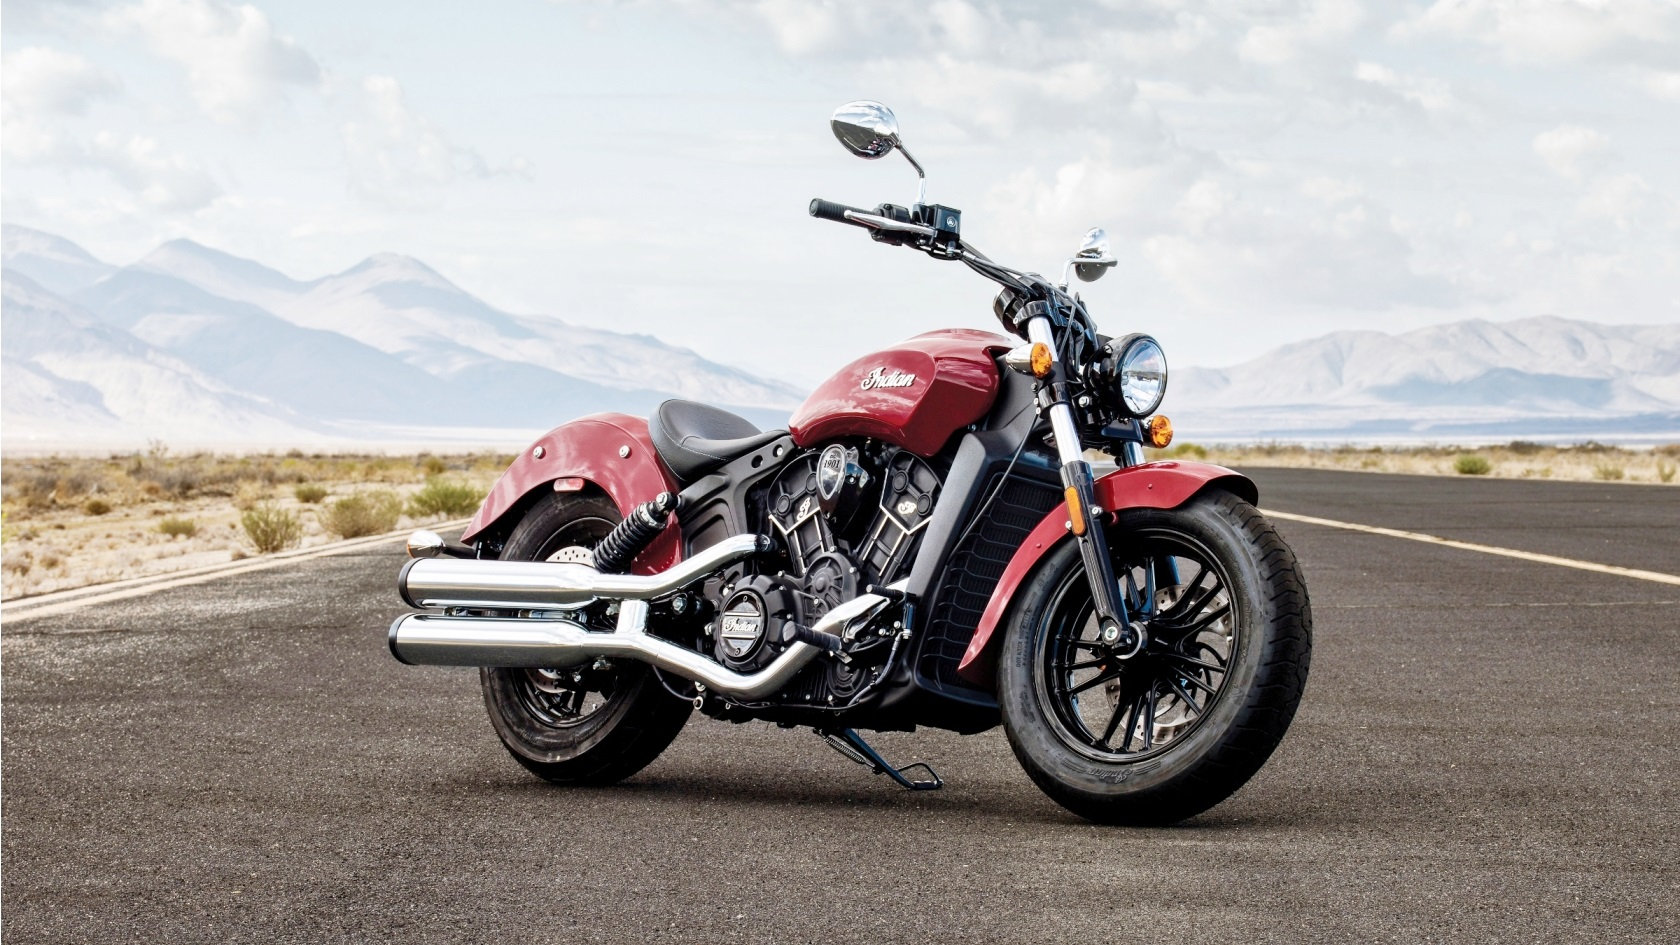 2016 Indian Scout Sixty launched in India